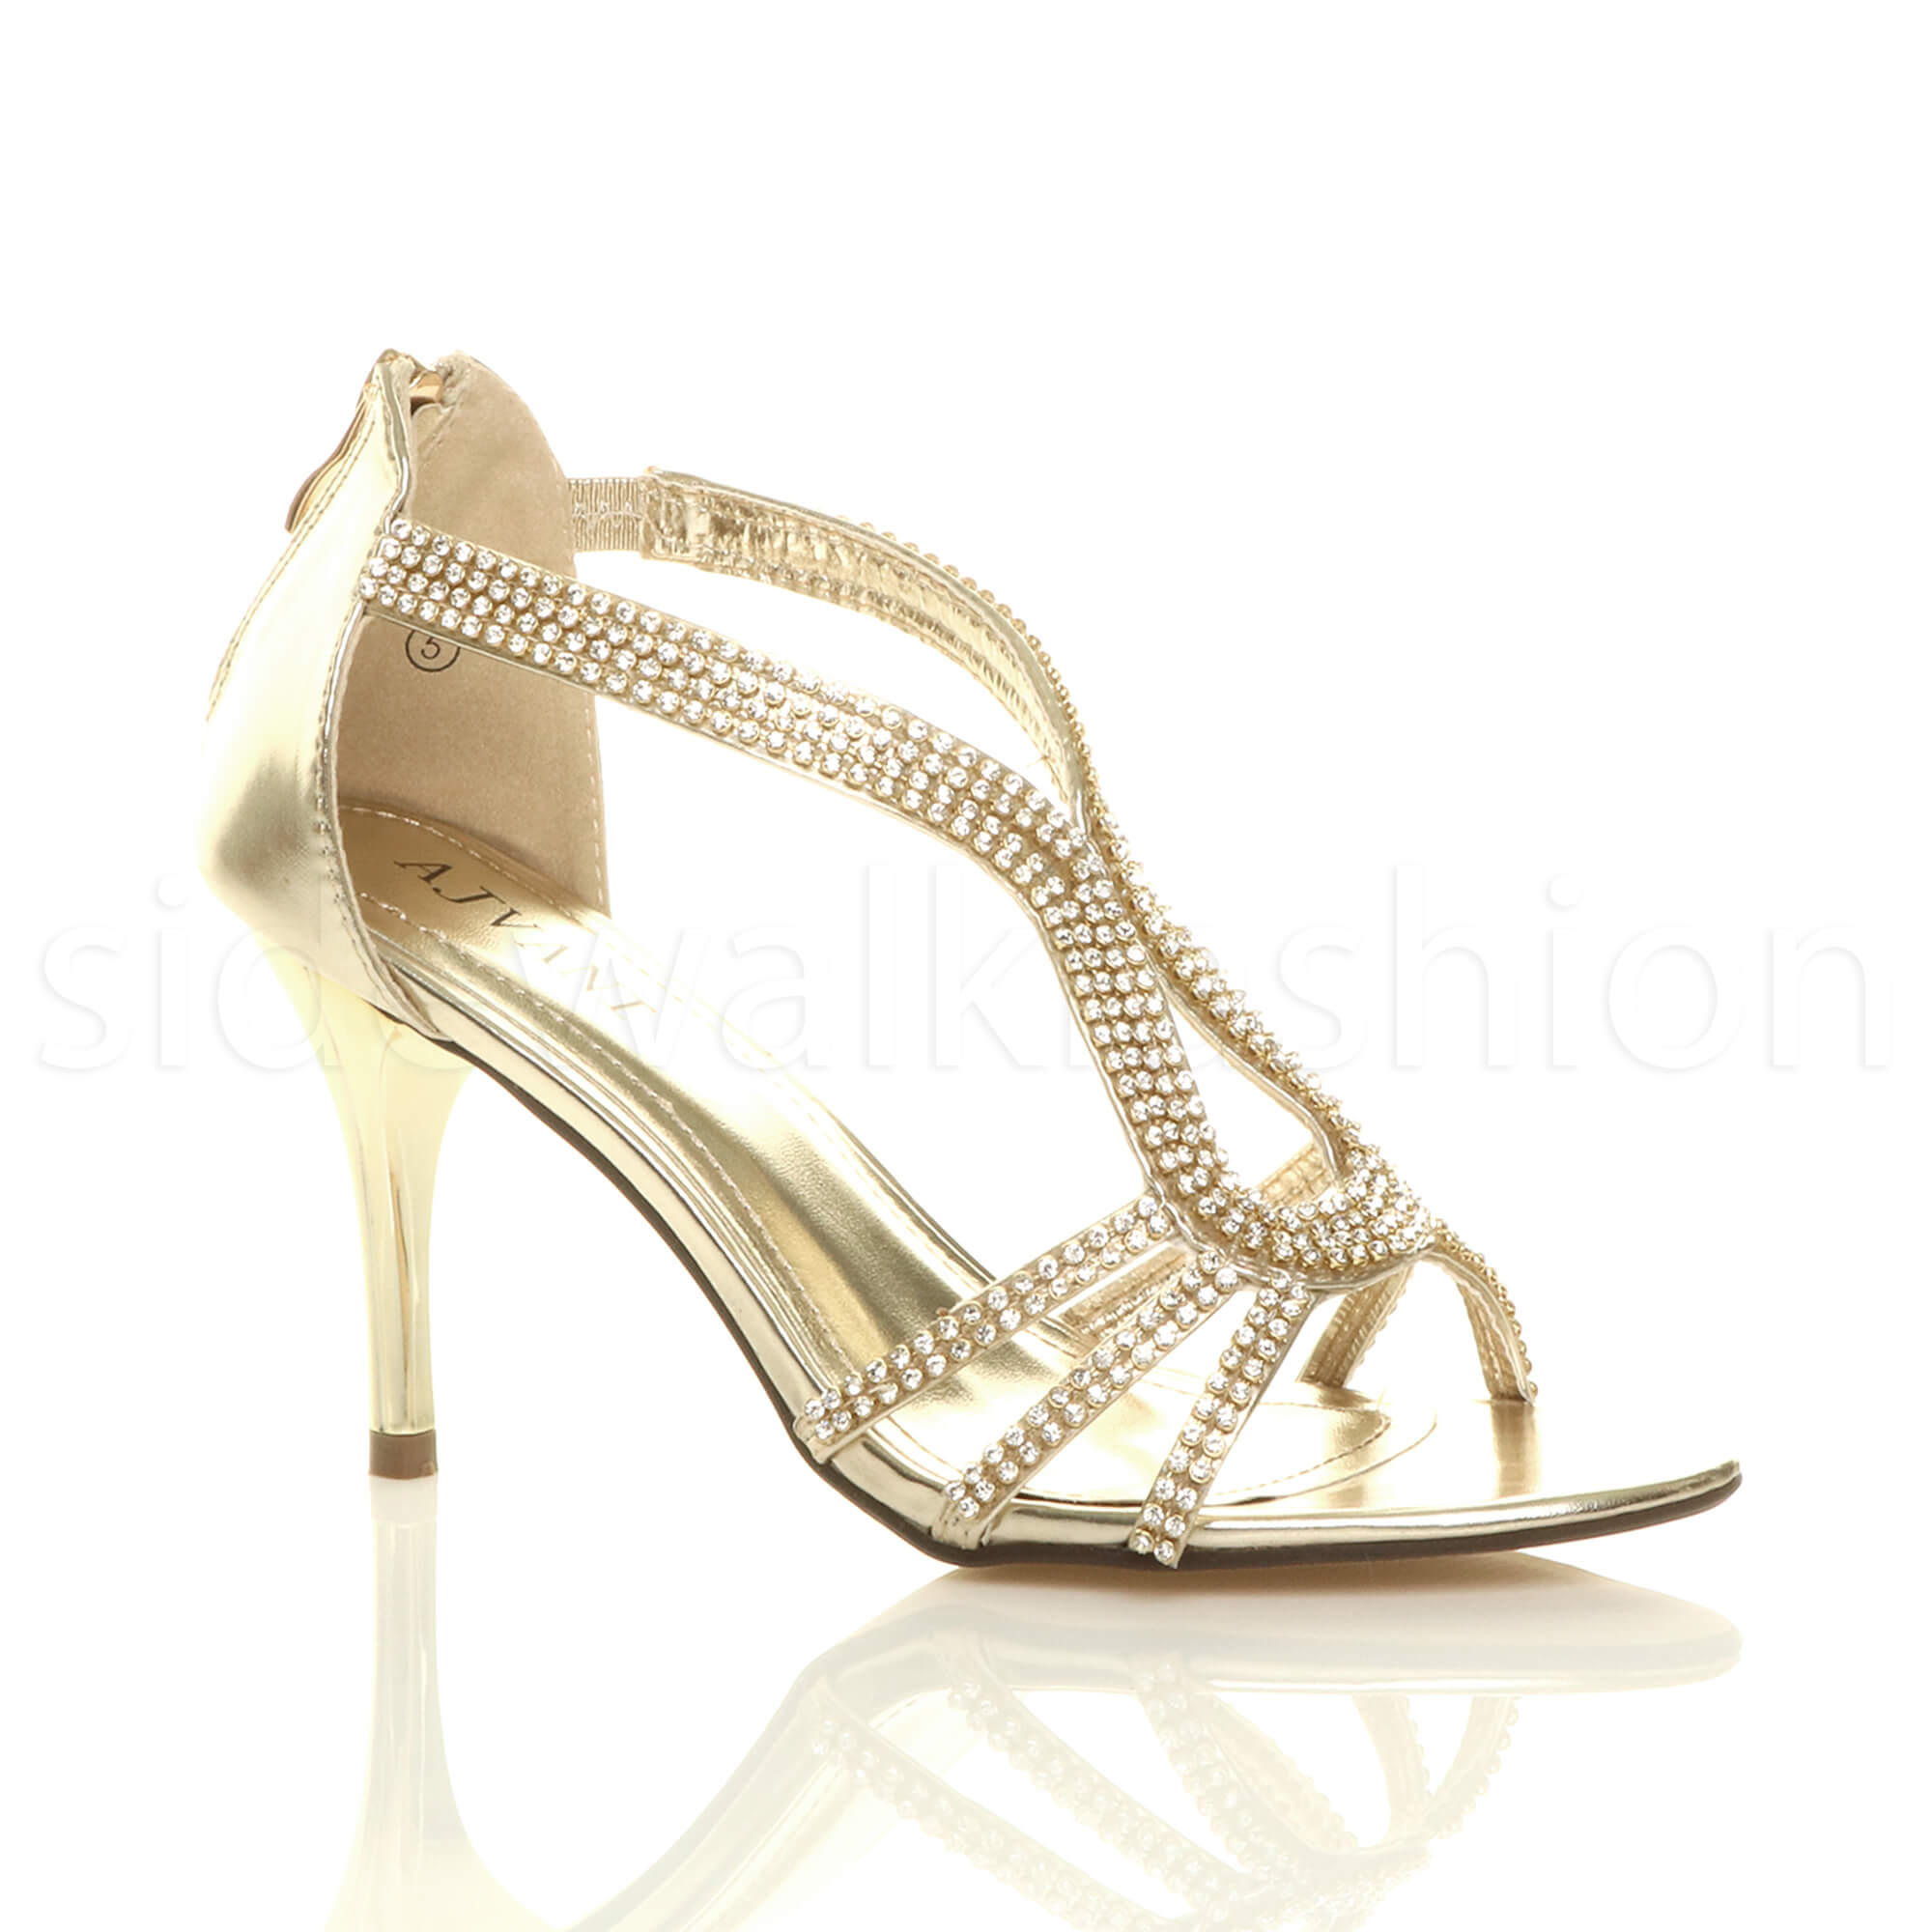 3a6480fa3182 Womens Ladies Stiletto Mid Heel Diamante Evening Prom Party Sandals Shoes  Size UK 3   EU 36   US 5 Gold. About this product. Picture 1 of 9  Picture  2 of 9 ...